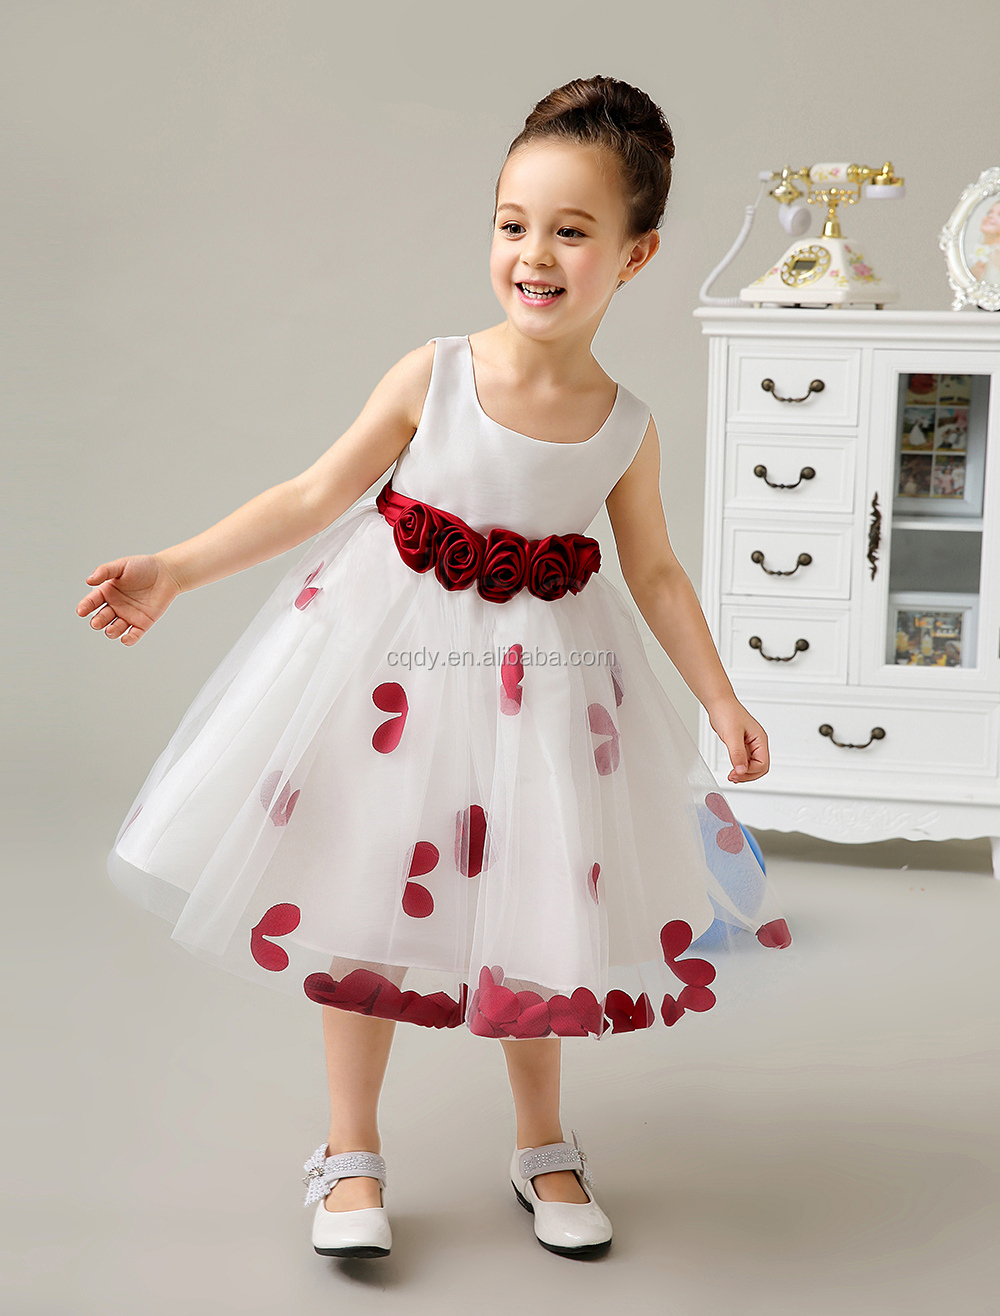 New Model Girl Dress 8 Different Colors Floral Scattered